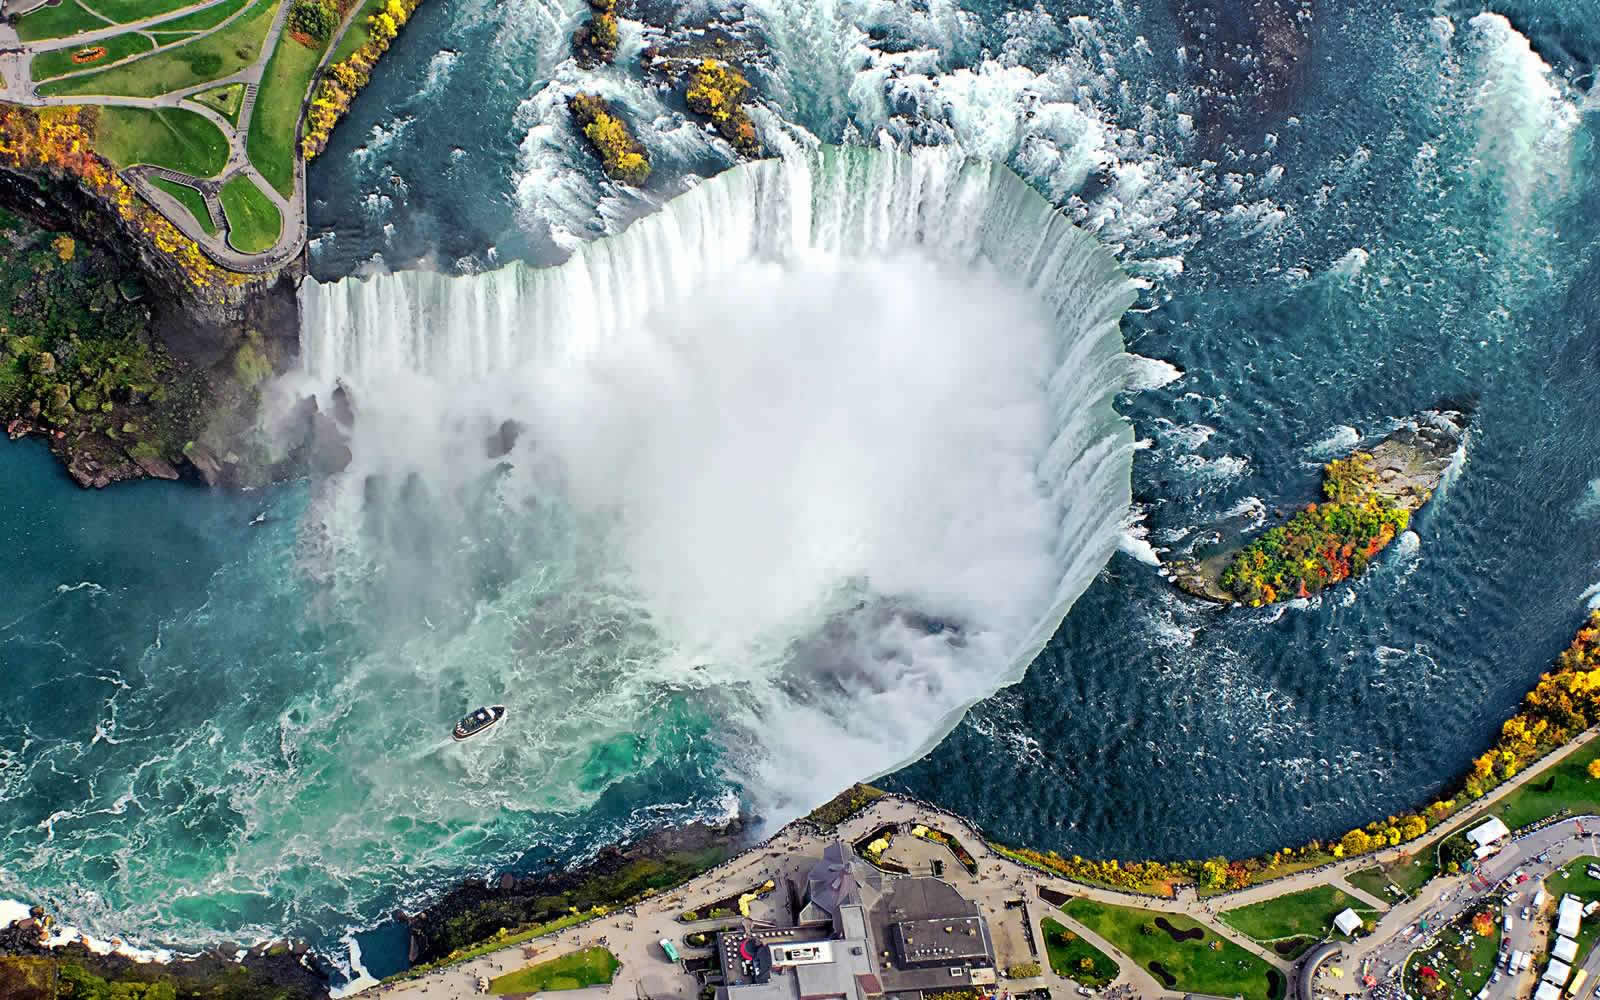 Niagara Falls: description, photo, where it is located 42